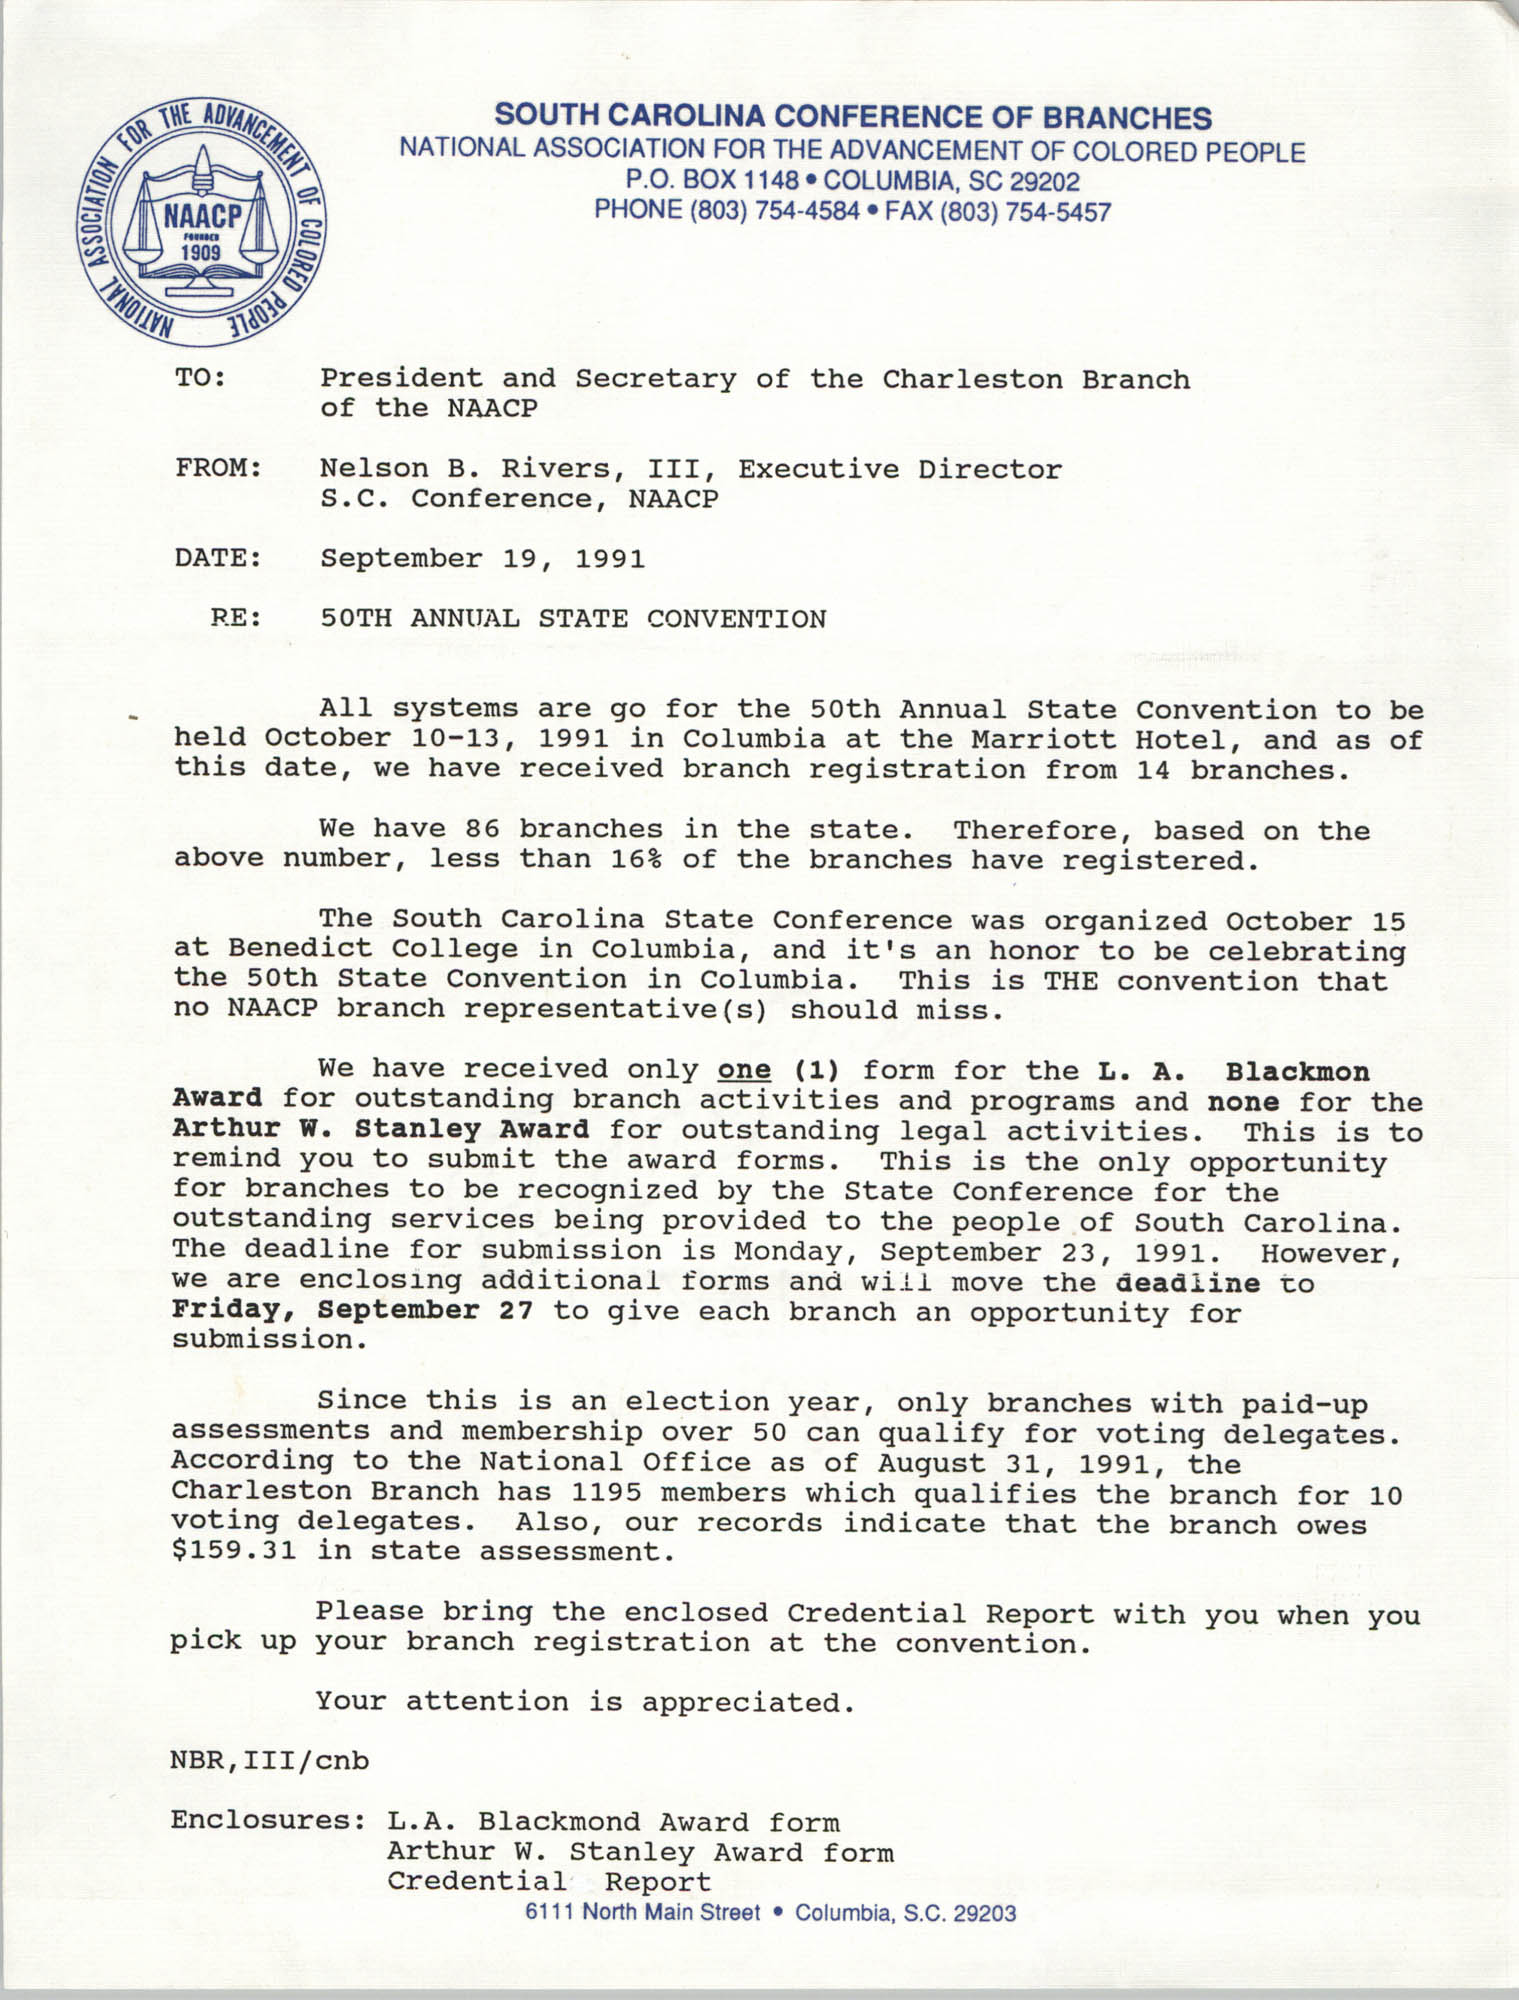 South Carolina Conference of Branches of the NAACP Memorandum, September 19, 1991